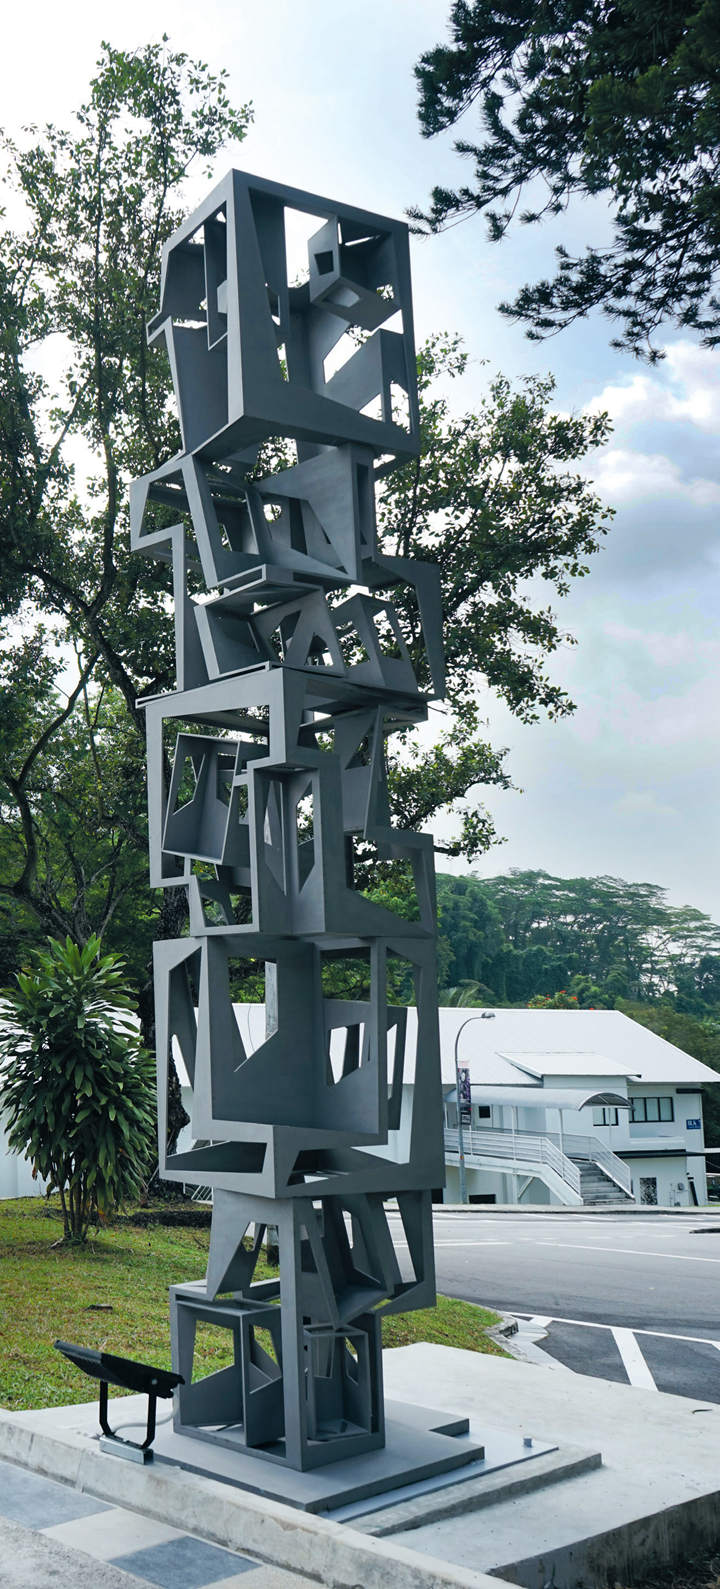 Ding Yi, Pillar (2014). Stainless steel. Edition of 3. Installation view: Gillman Barracks, Singapore. Courtesy ShanghART Gallery, Shanghai/ Beijing/ Singapore.